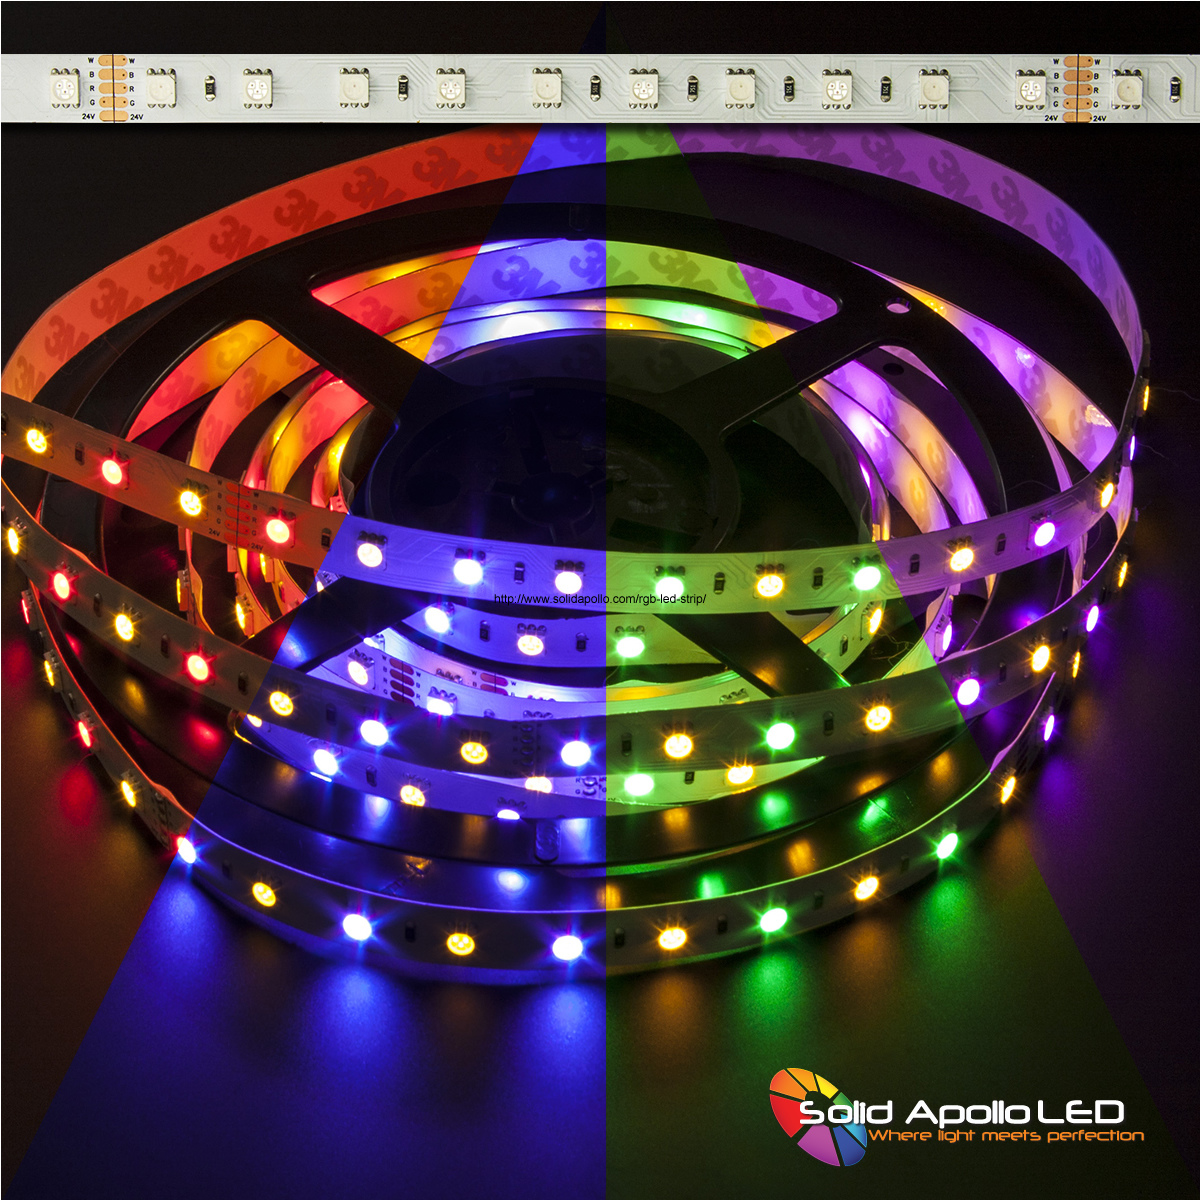 solid apollo led introduces over 20 different types of rgb and rgbw led strip lights. Black Bedroom Furniture Sets. Home Design Ideas